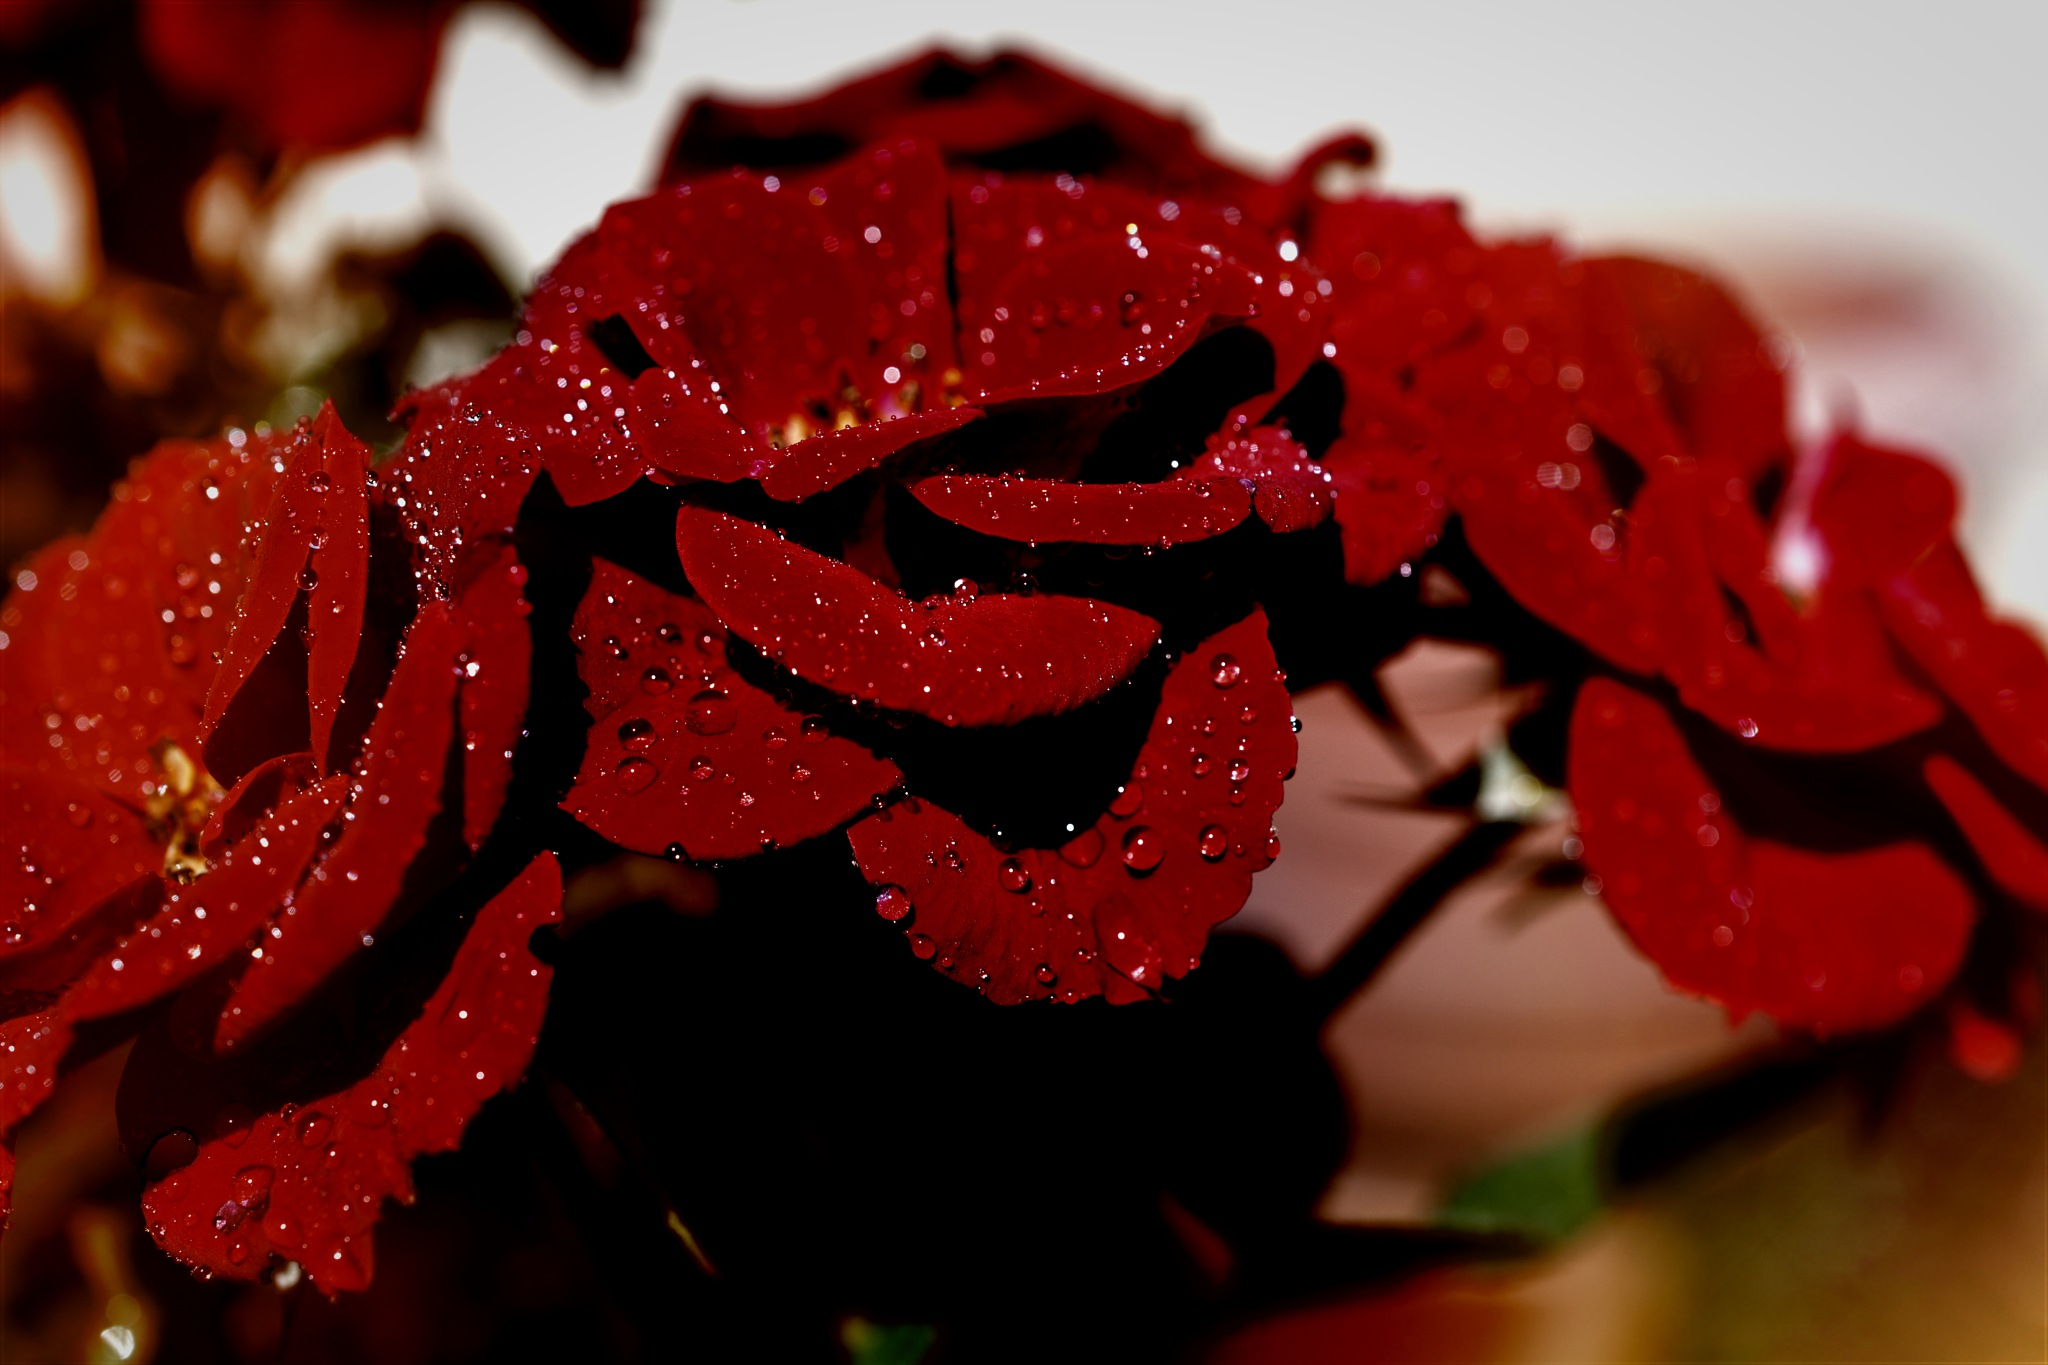 red knockout rose by pgavin5000